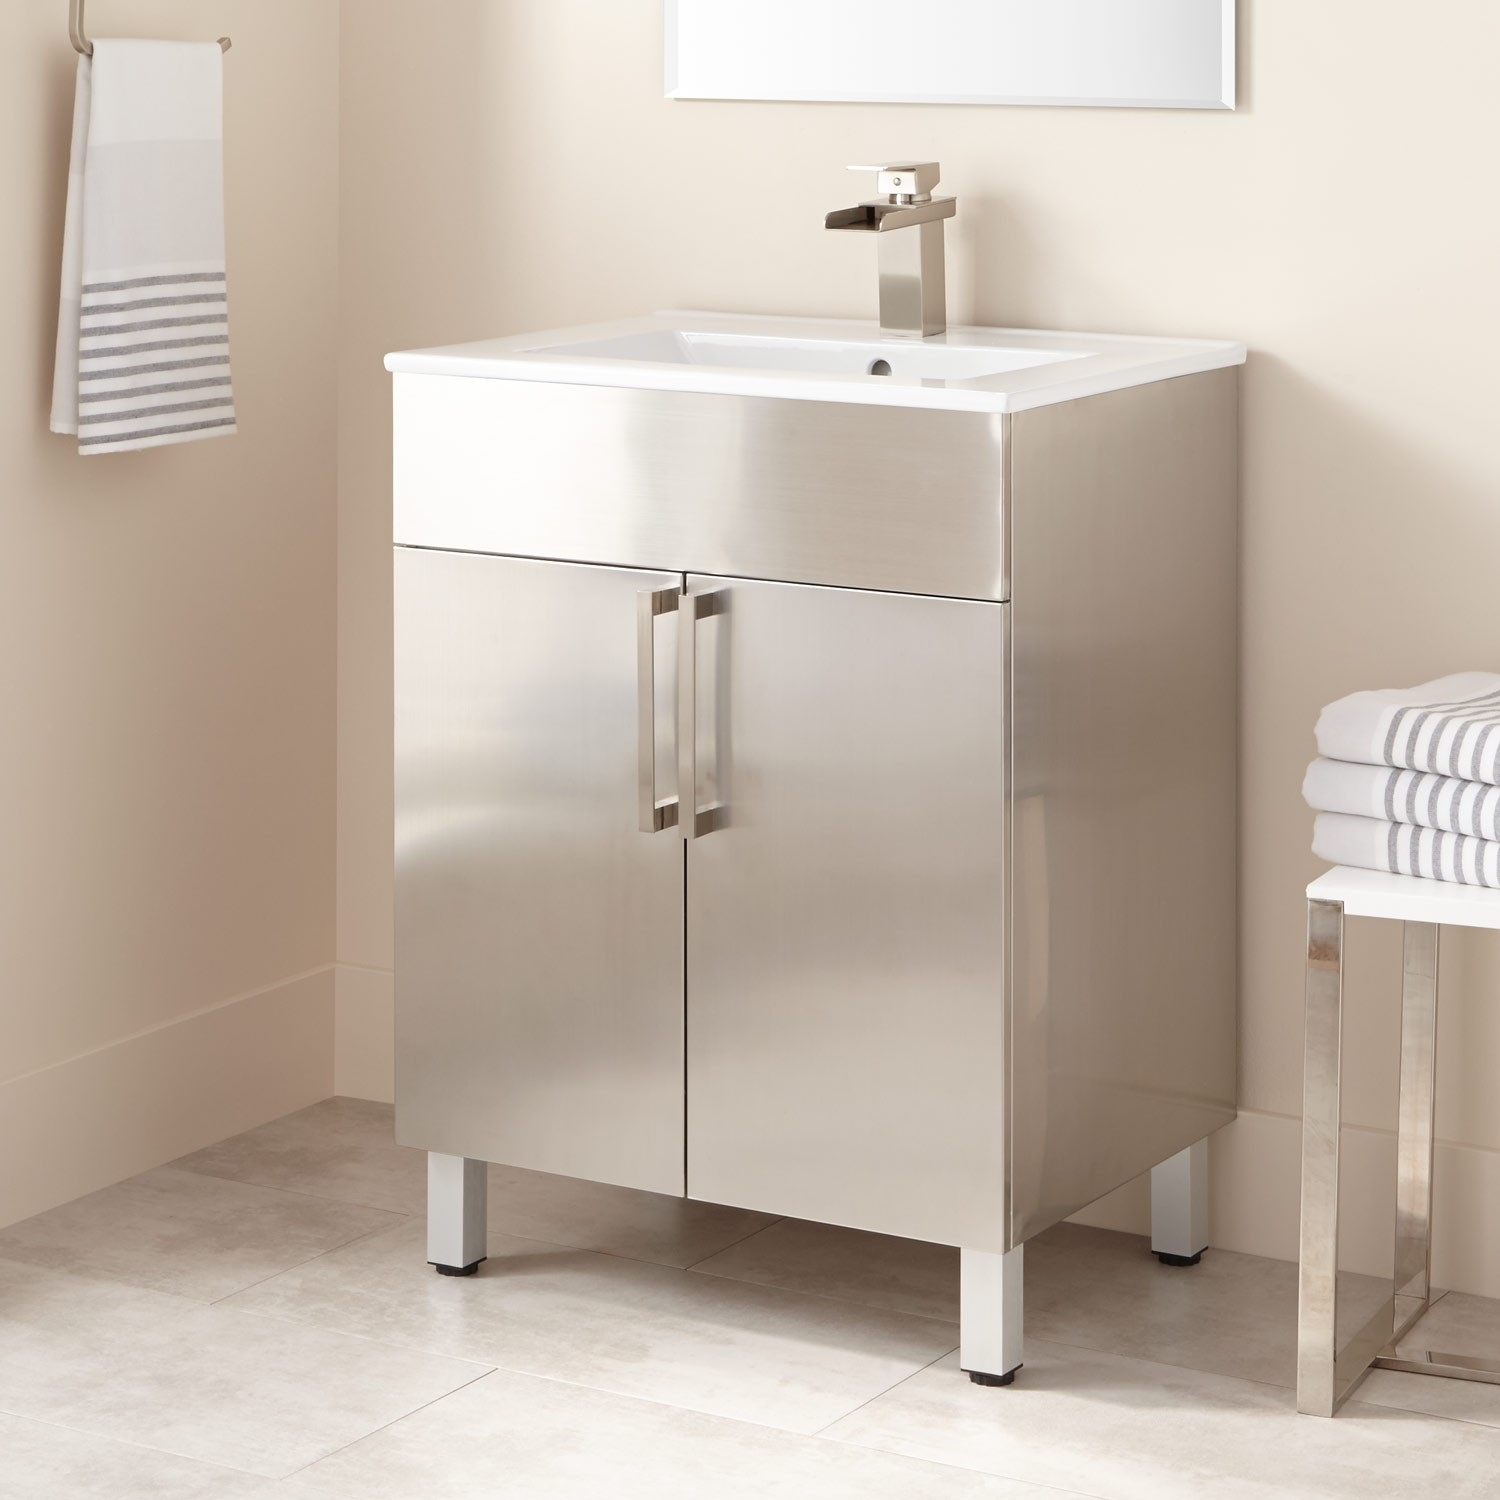 Stainless Steel Freestanding Bathroom Cabinets